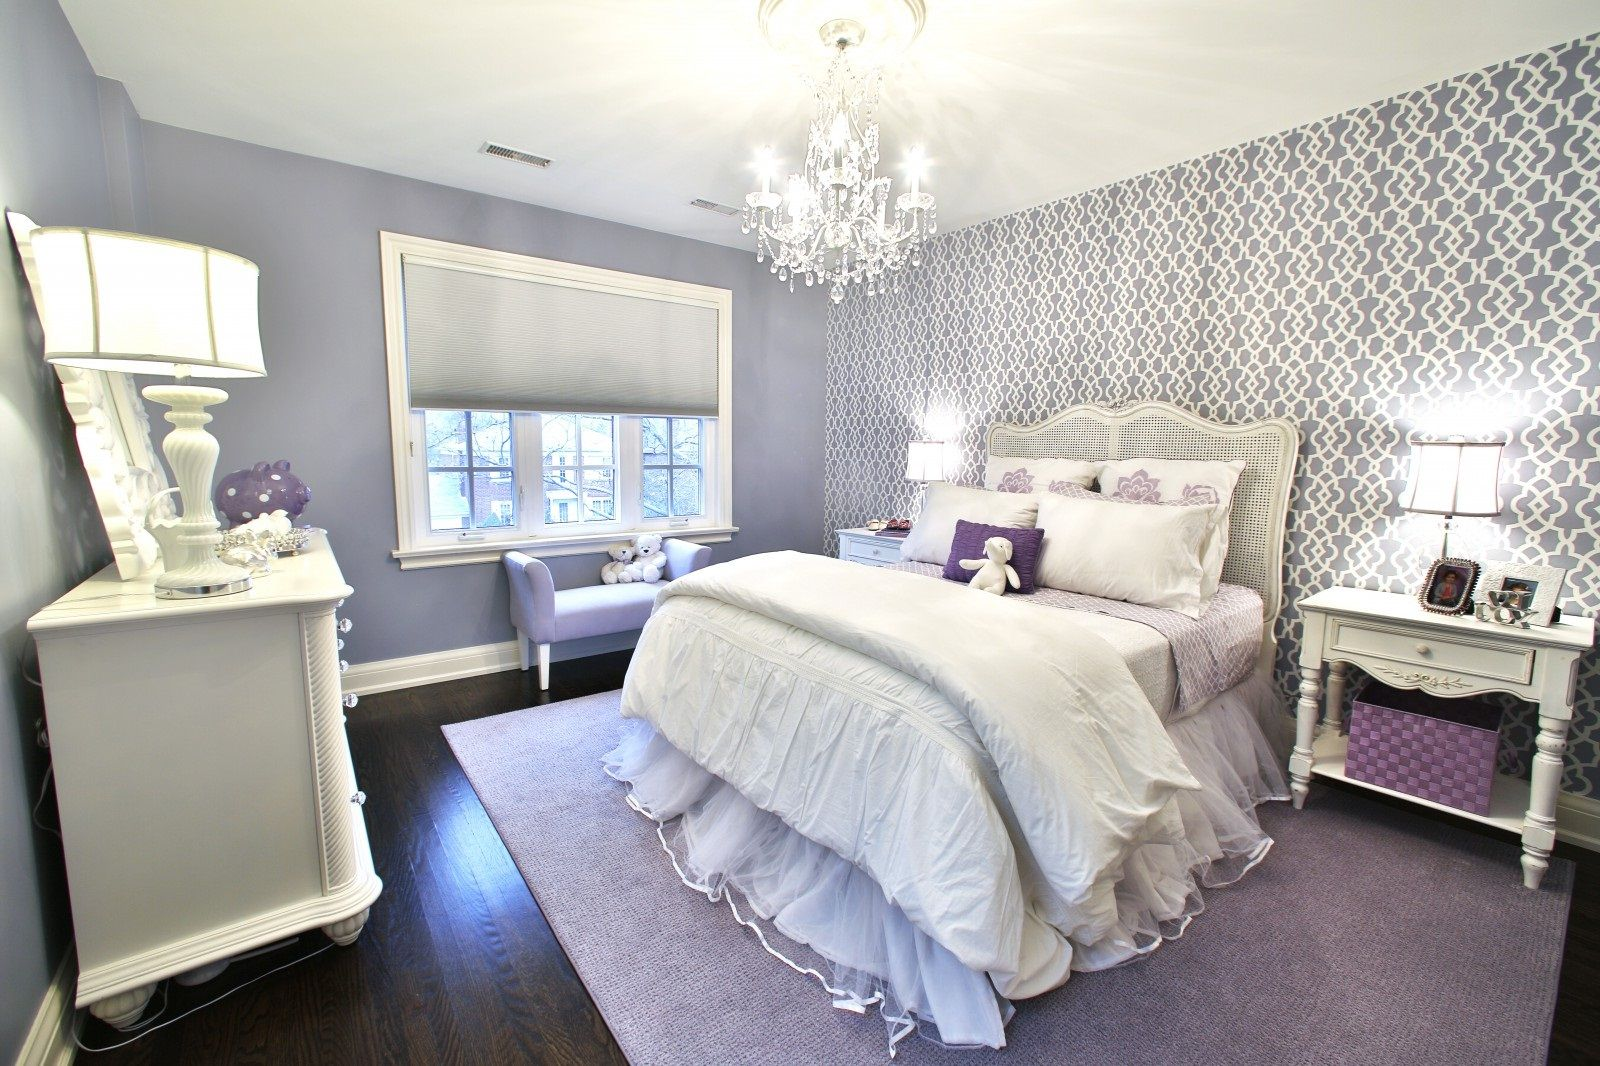 Luxury Bedroom for Teenage Girl | Girls bedroom furniture ...